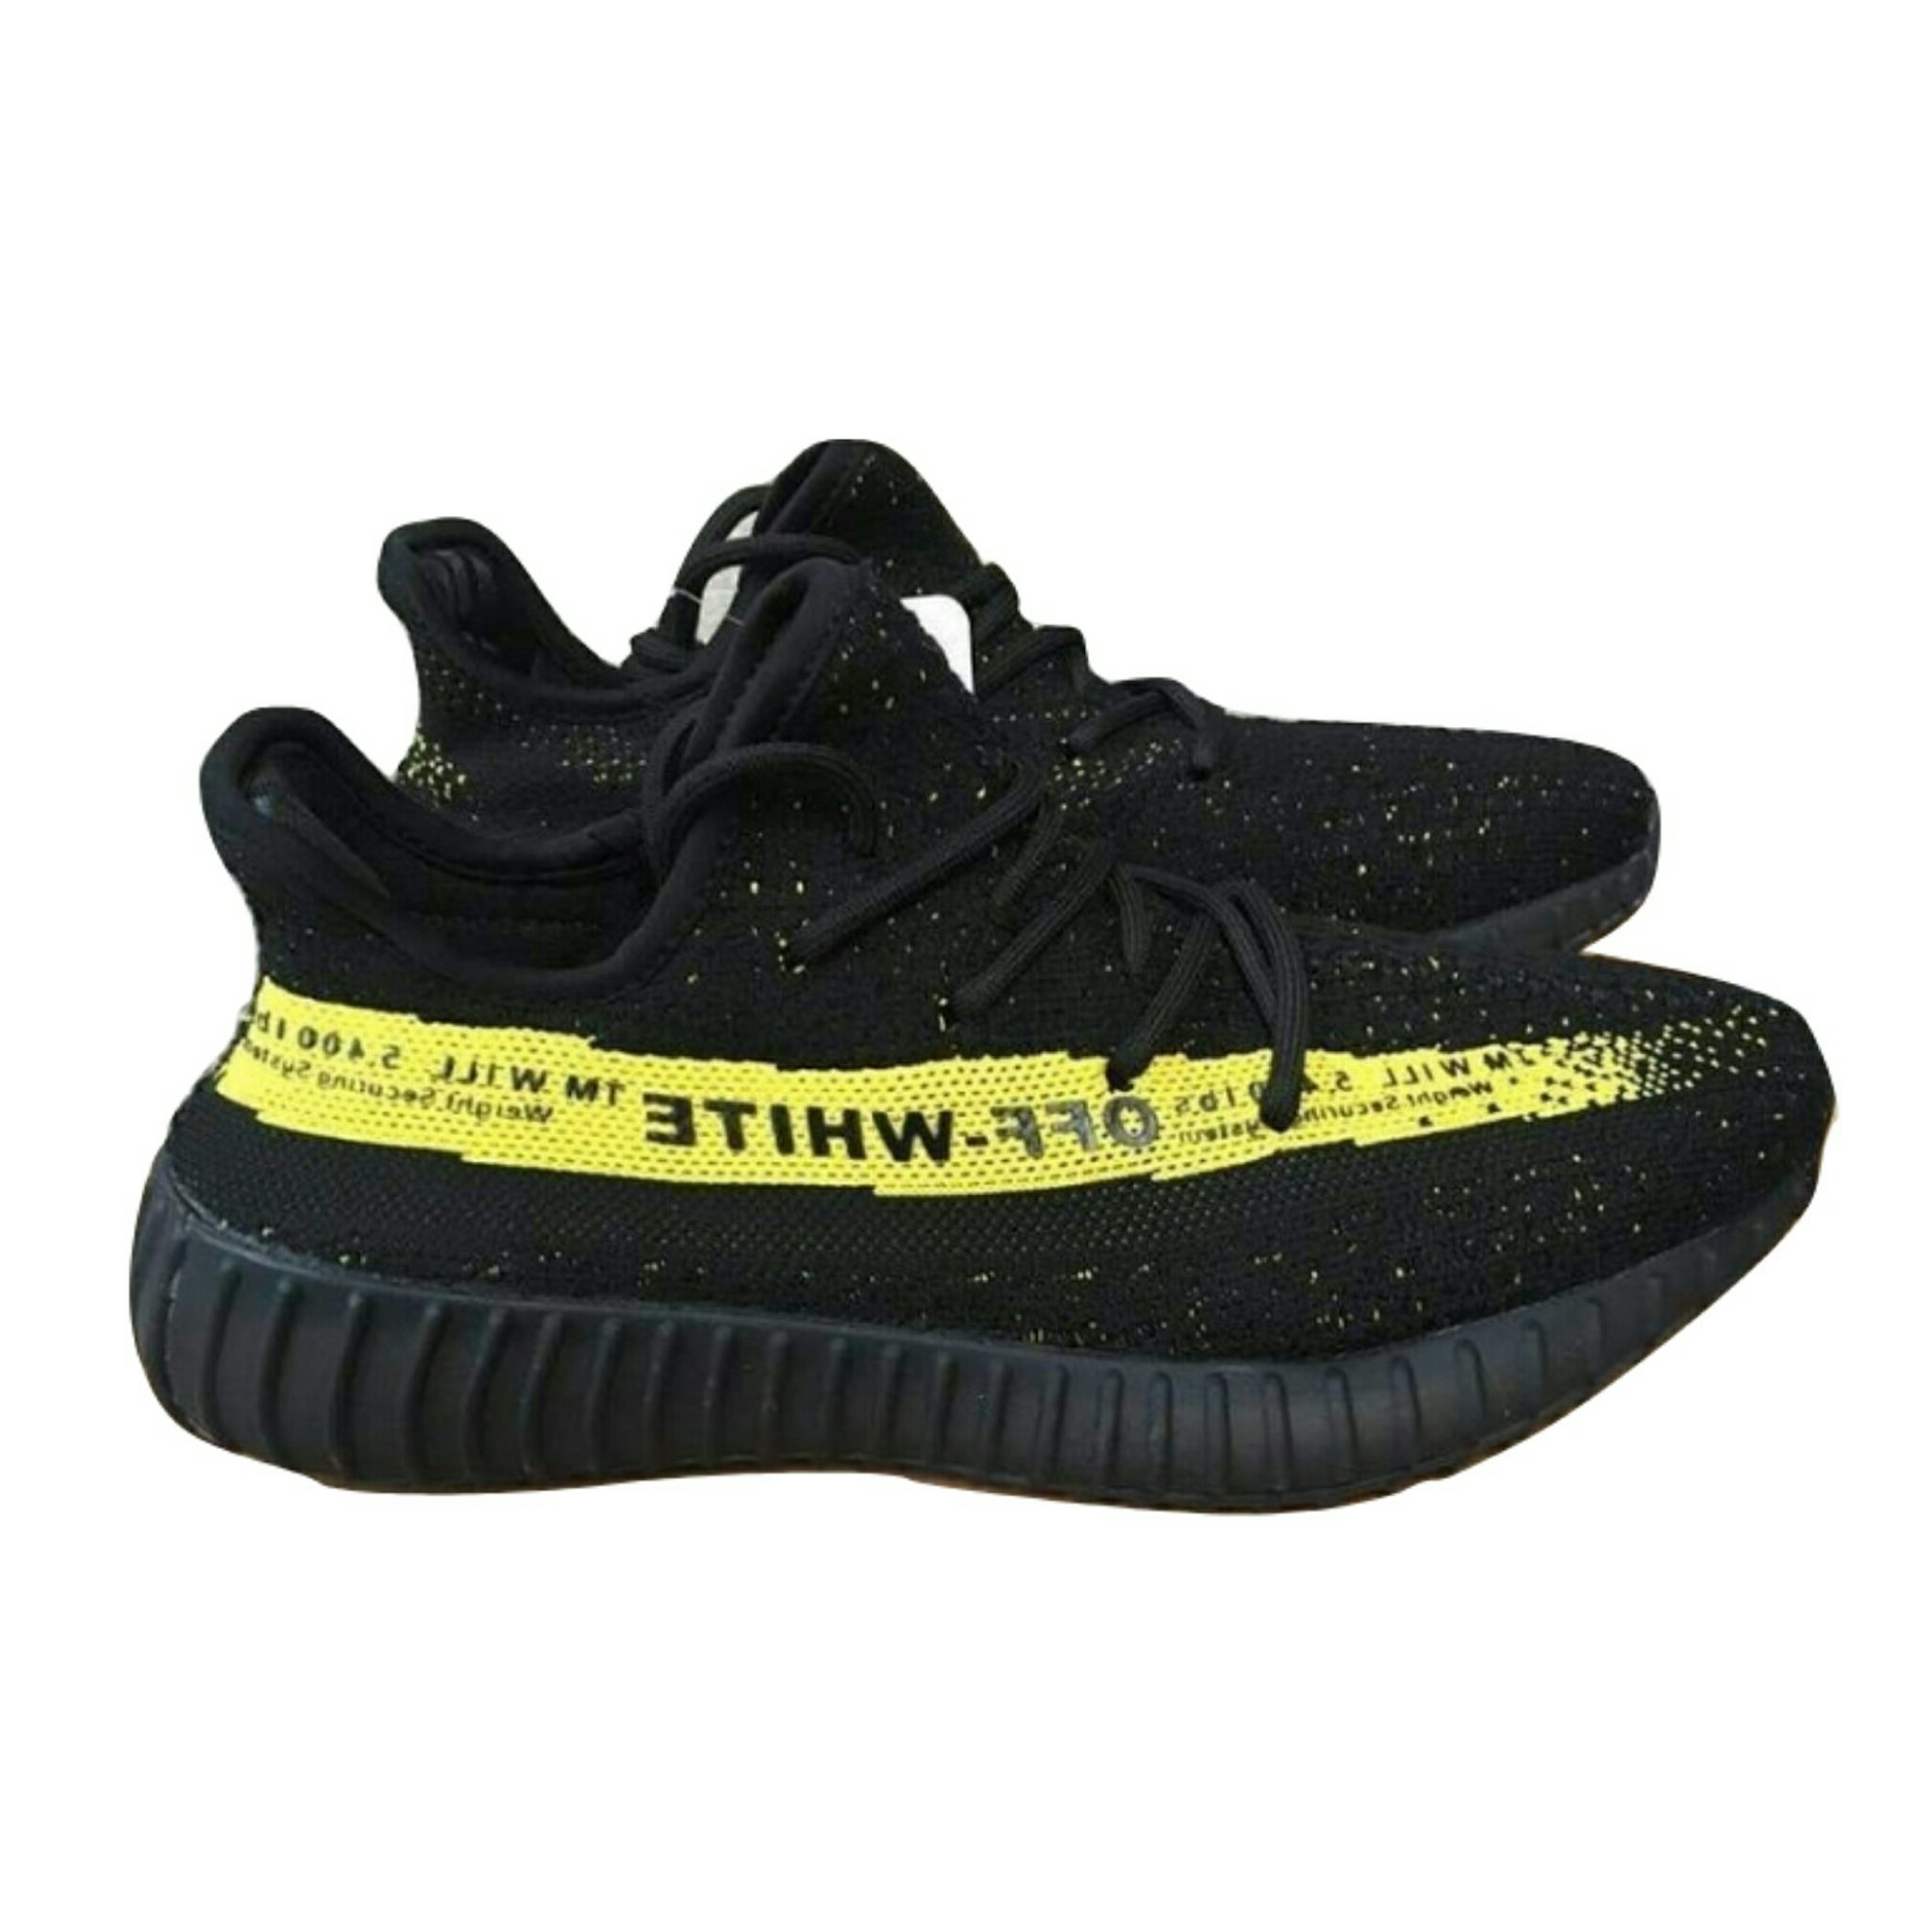 """the latest 13891 3ff39 Adidas Yeezy Boost 350 """"OFF-WHITE"""""""